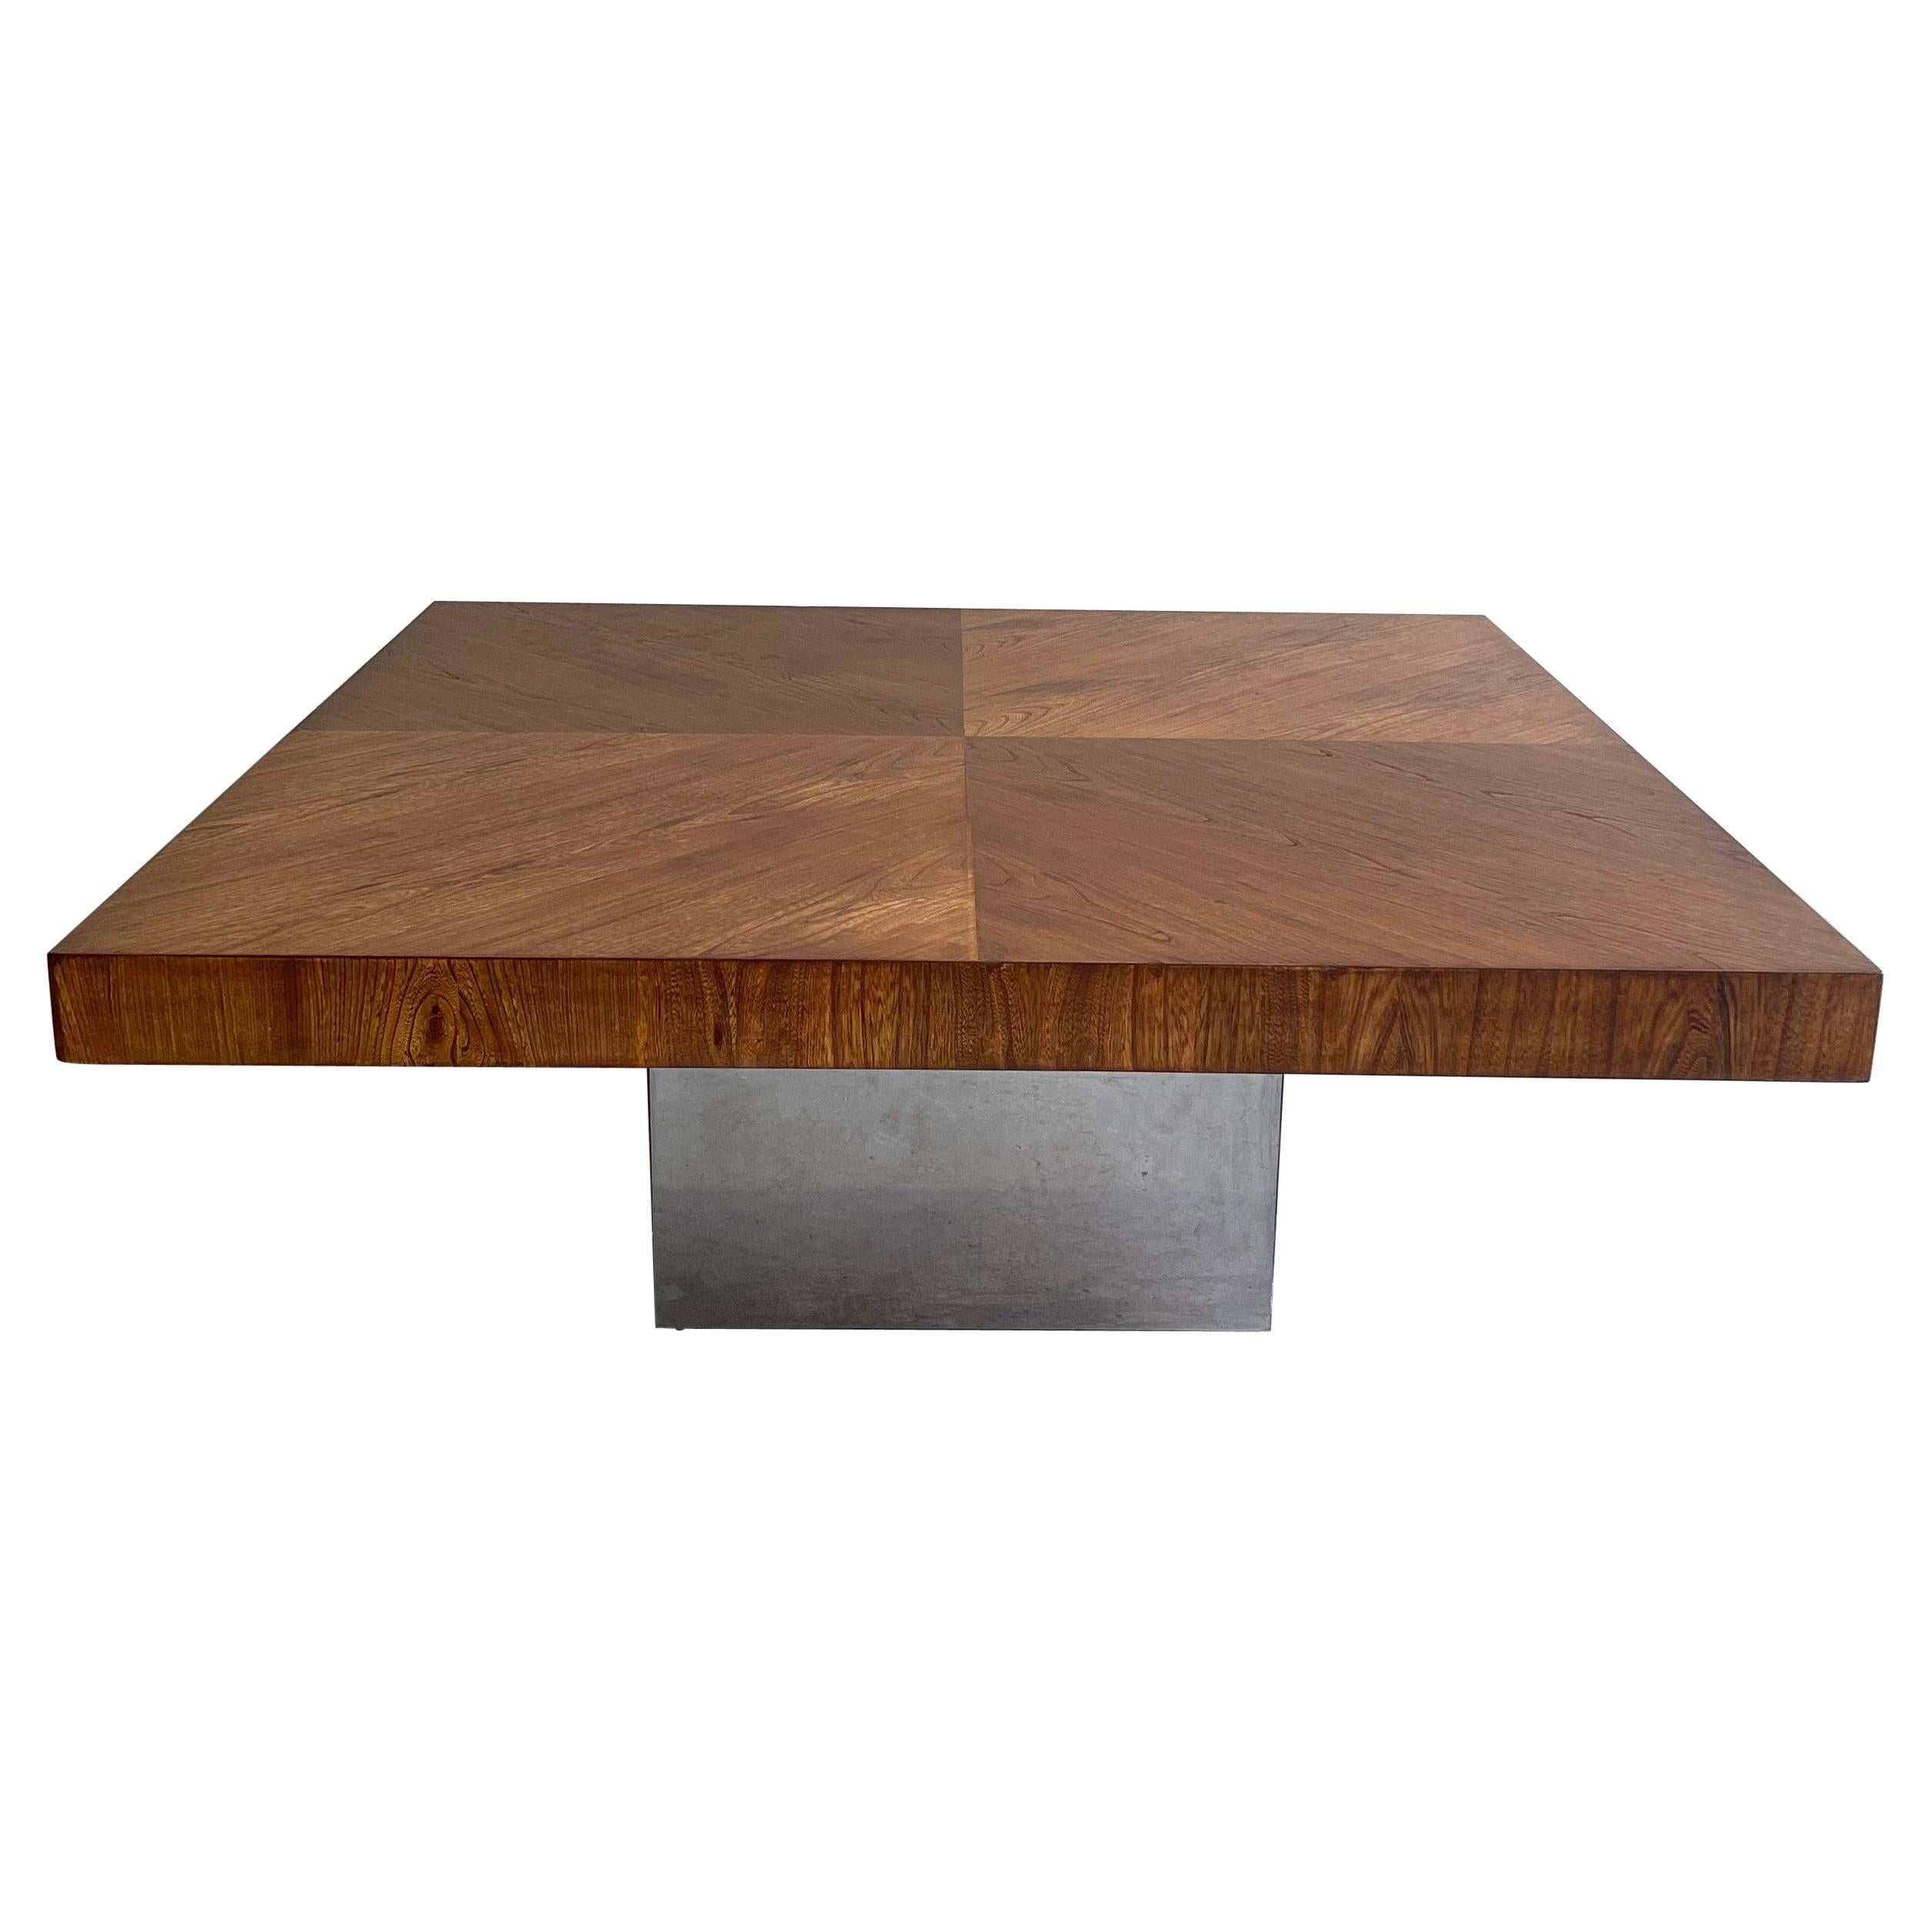 Walnut and Chrome Coffee Table by Milo Baughman for Thayer Coggin